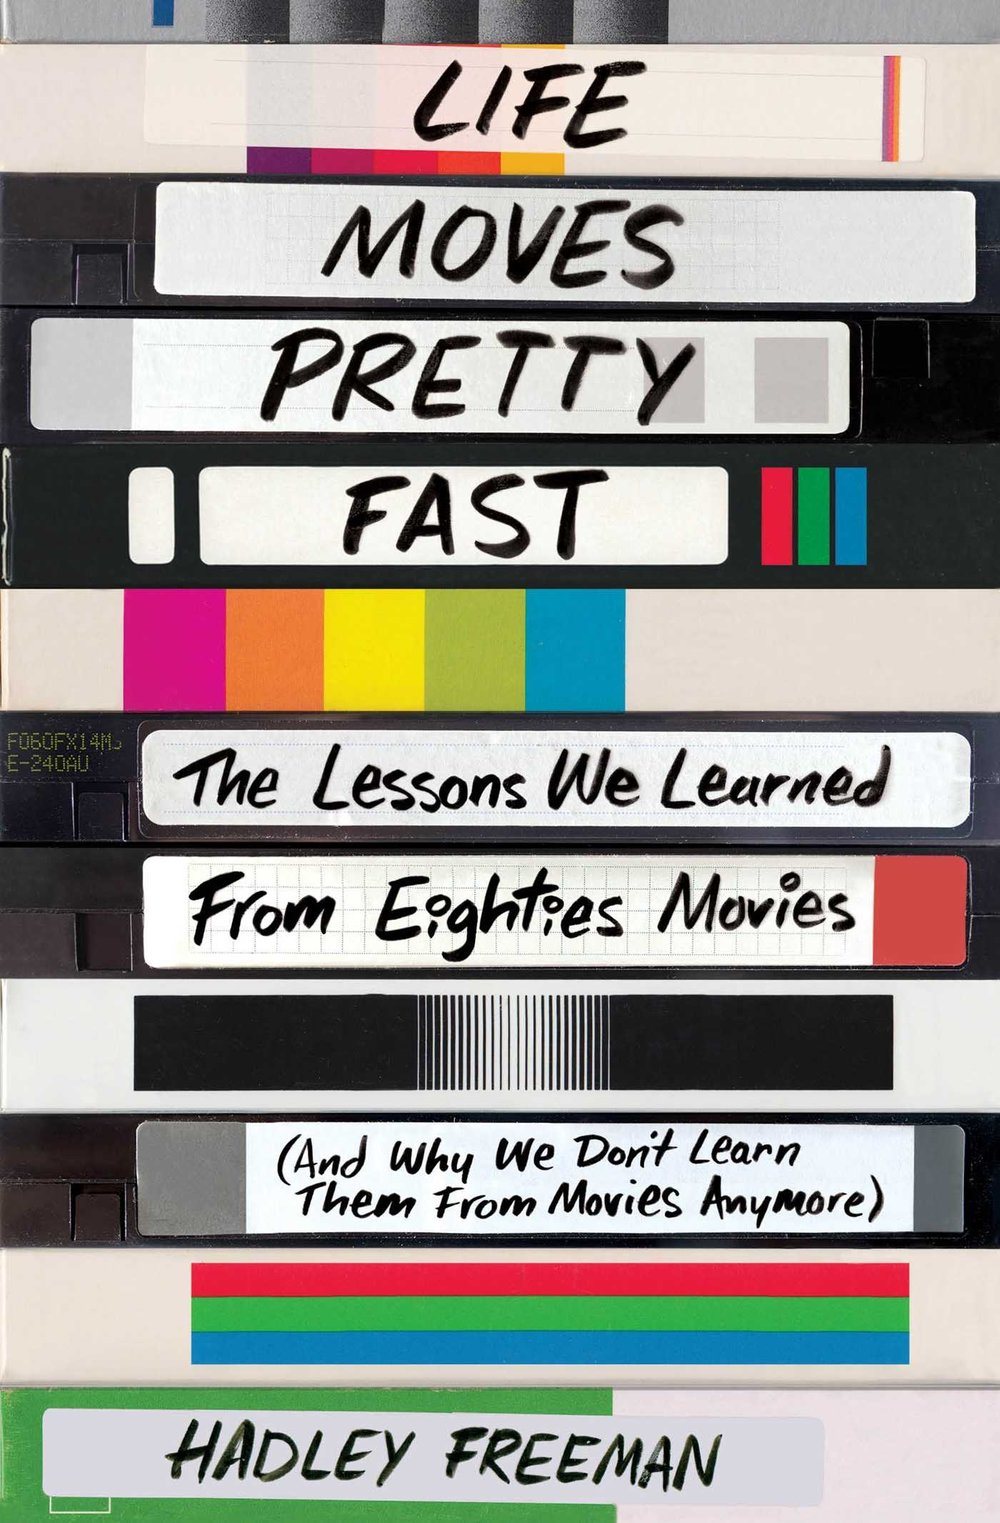 Life Moves Pretty Fast: The Lessons We LearnedFrom EightiesMovies (And Why We Don't Learn From Movies Anymore) - by Hadley Freeman